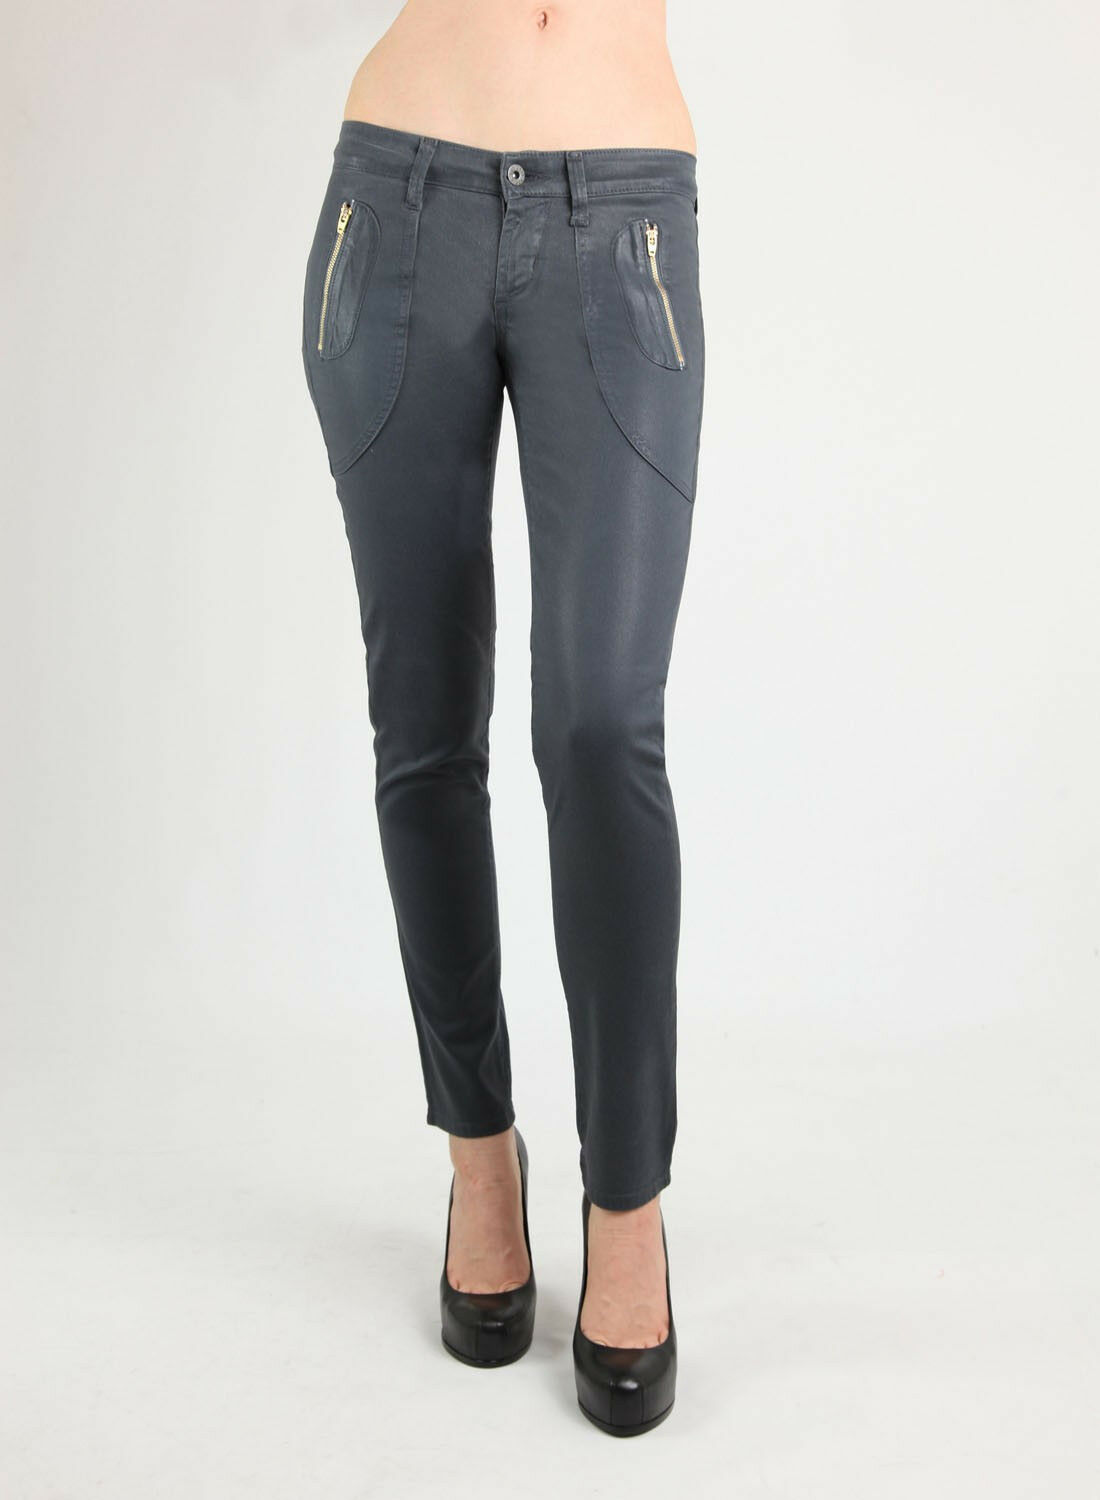 New James Jeans  260 Polo Zip Skinny Rich VASSAR COATED TRIXIE JEAN NWT SIZE 29